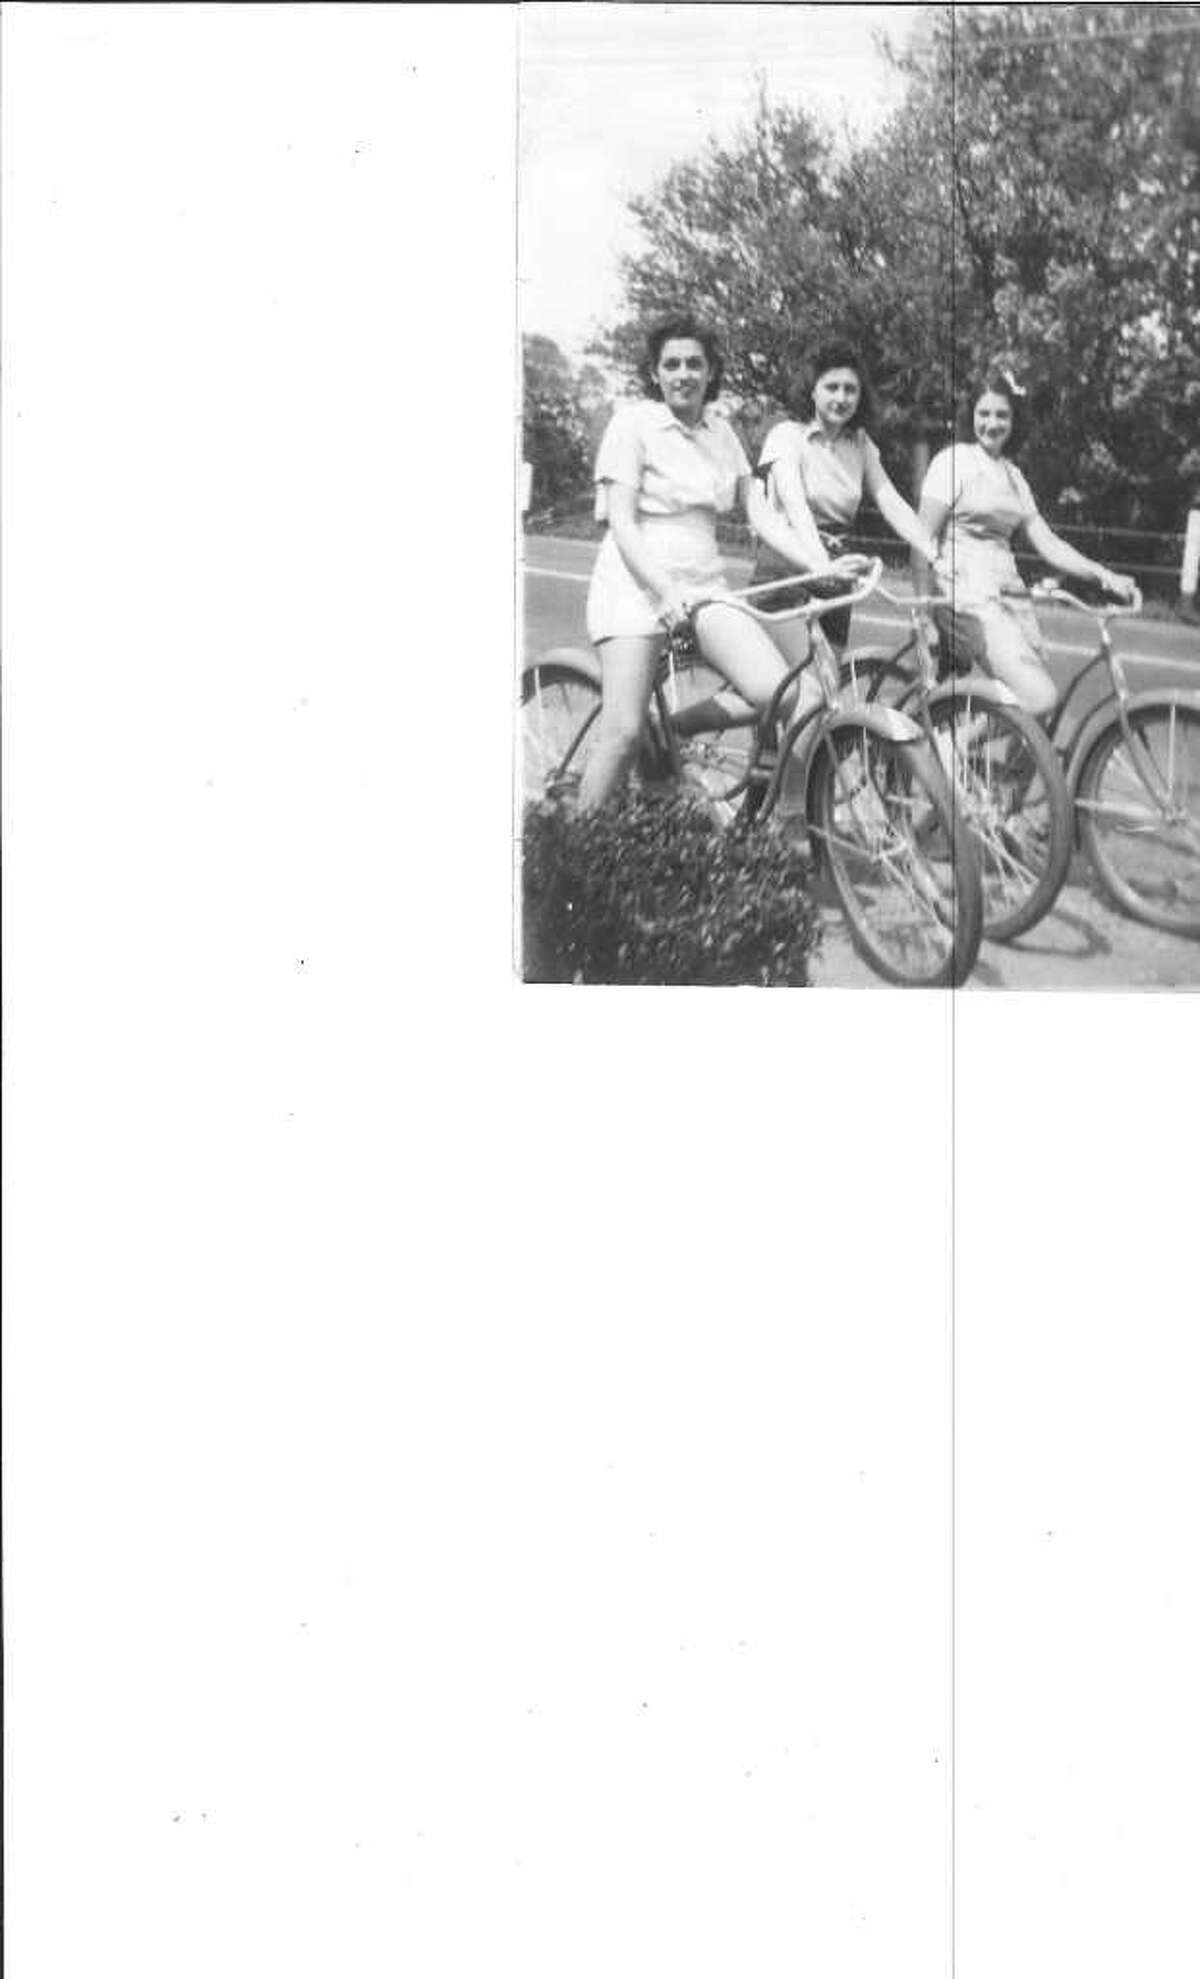 Evelyn Palmer Jackson, a longtime Westport resident, is flanked by friends Lena Carusone and Lucille Purcell as they biked in the summer 1939 on Wilton Road.